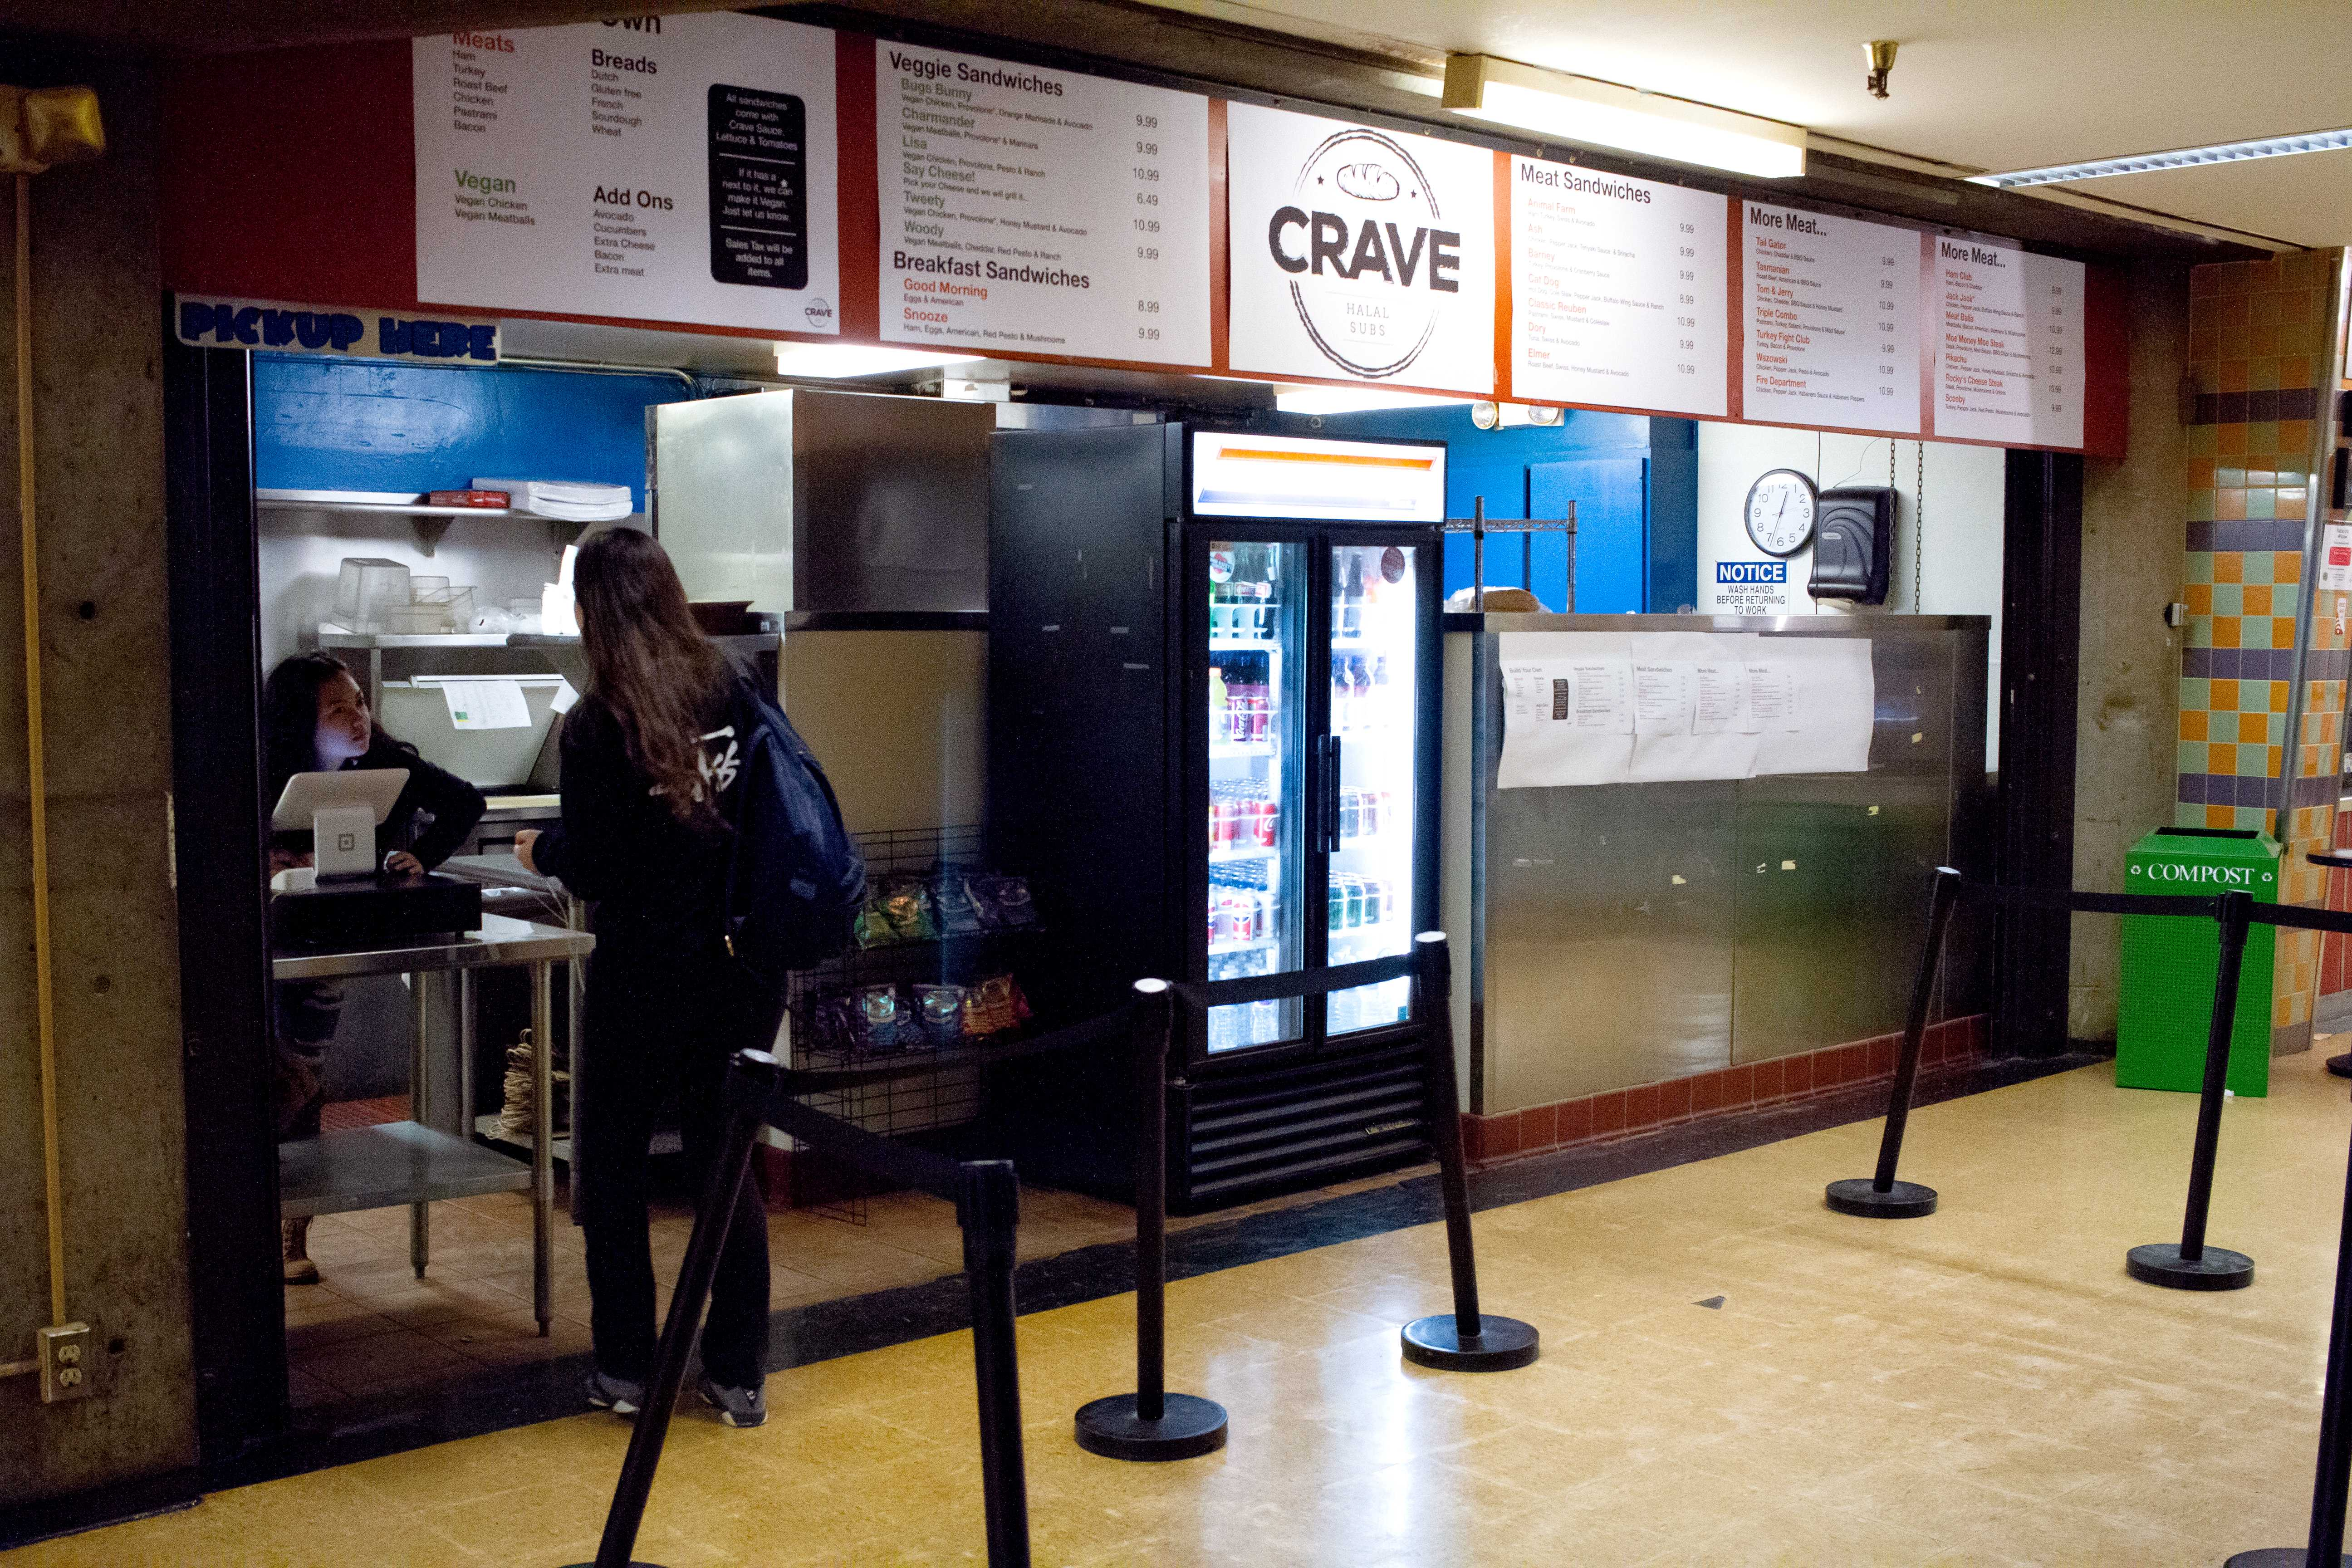 A student places an order at Crave Halal Sandwiches in the basement of the Cesar Chavez building on Monday, Apr. 30, 2018.